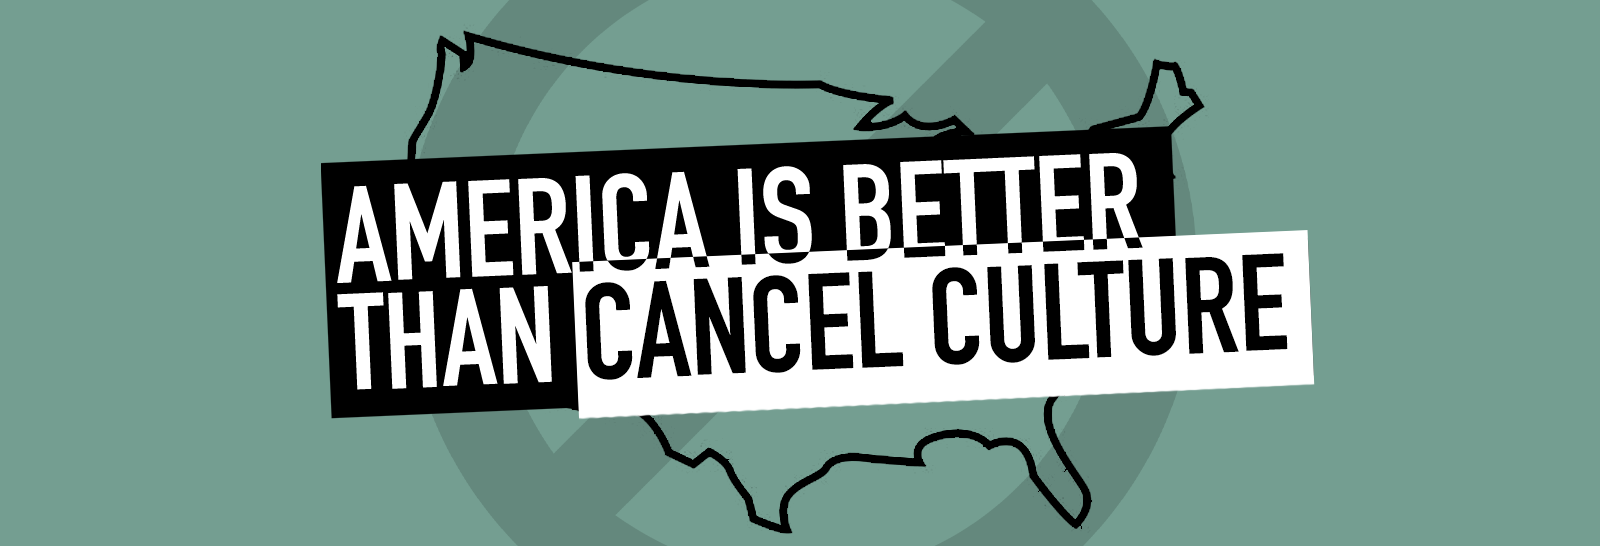 America is better than cancel culture graphic